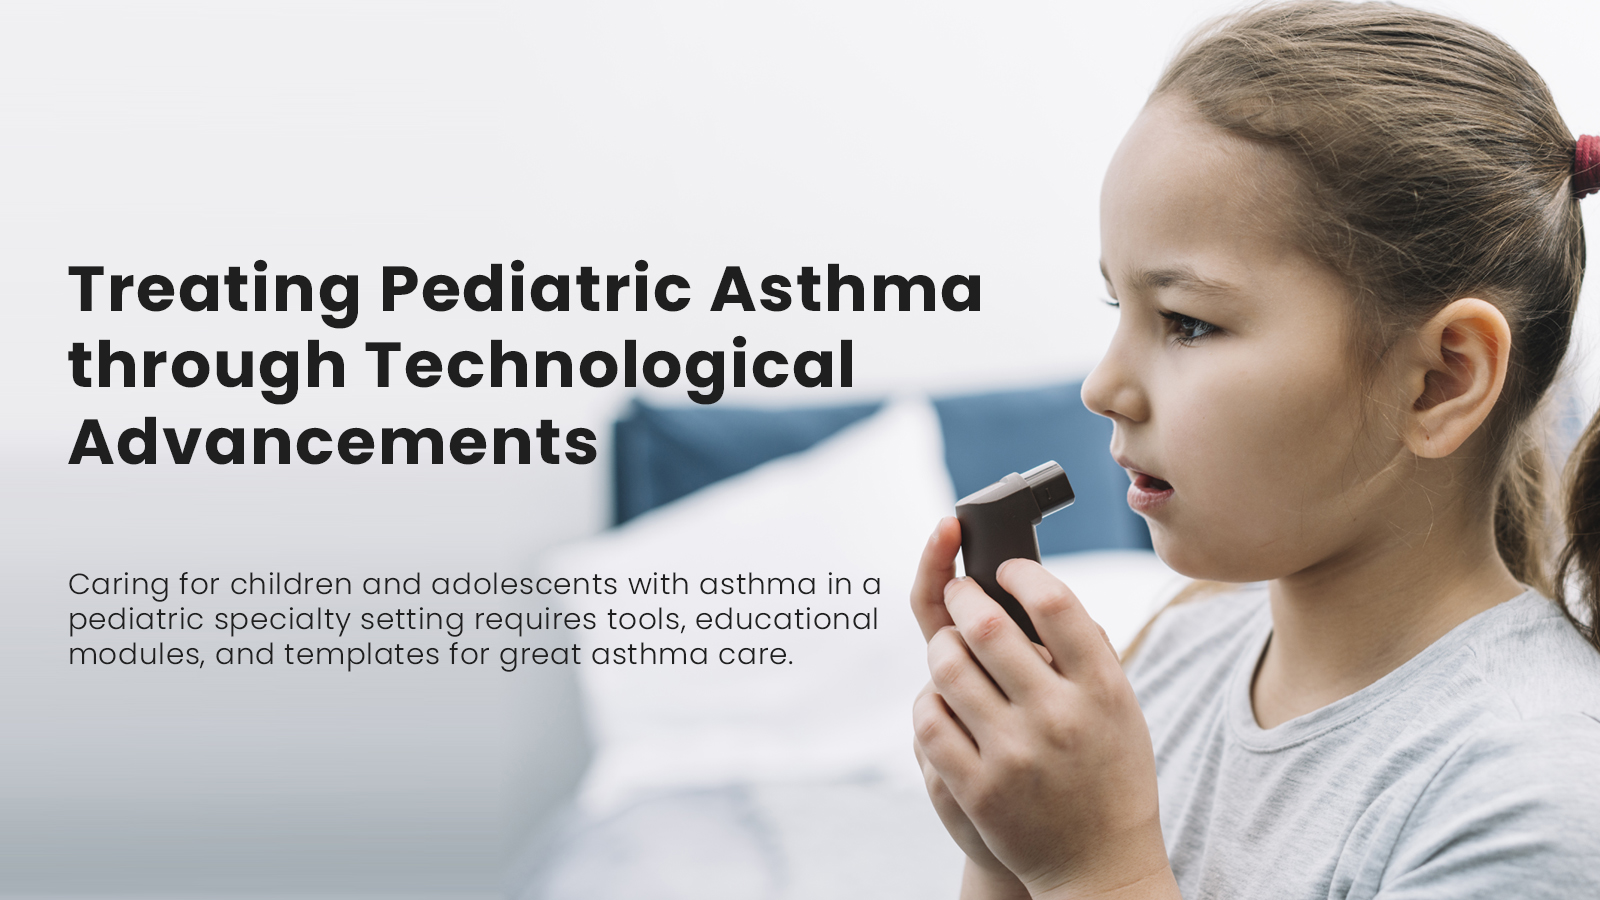 iPatientCare Blog - Treating Pediatric Asthma through Technological Advancements